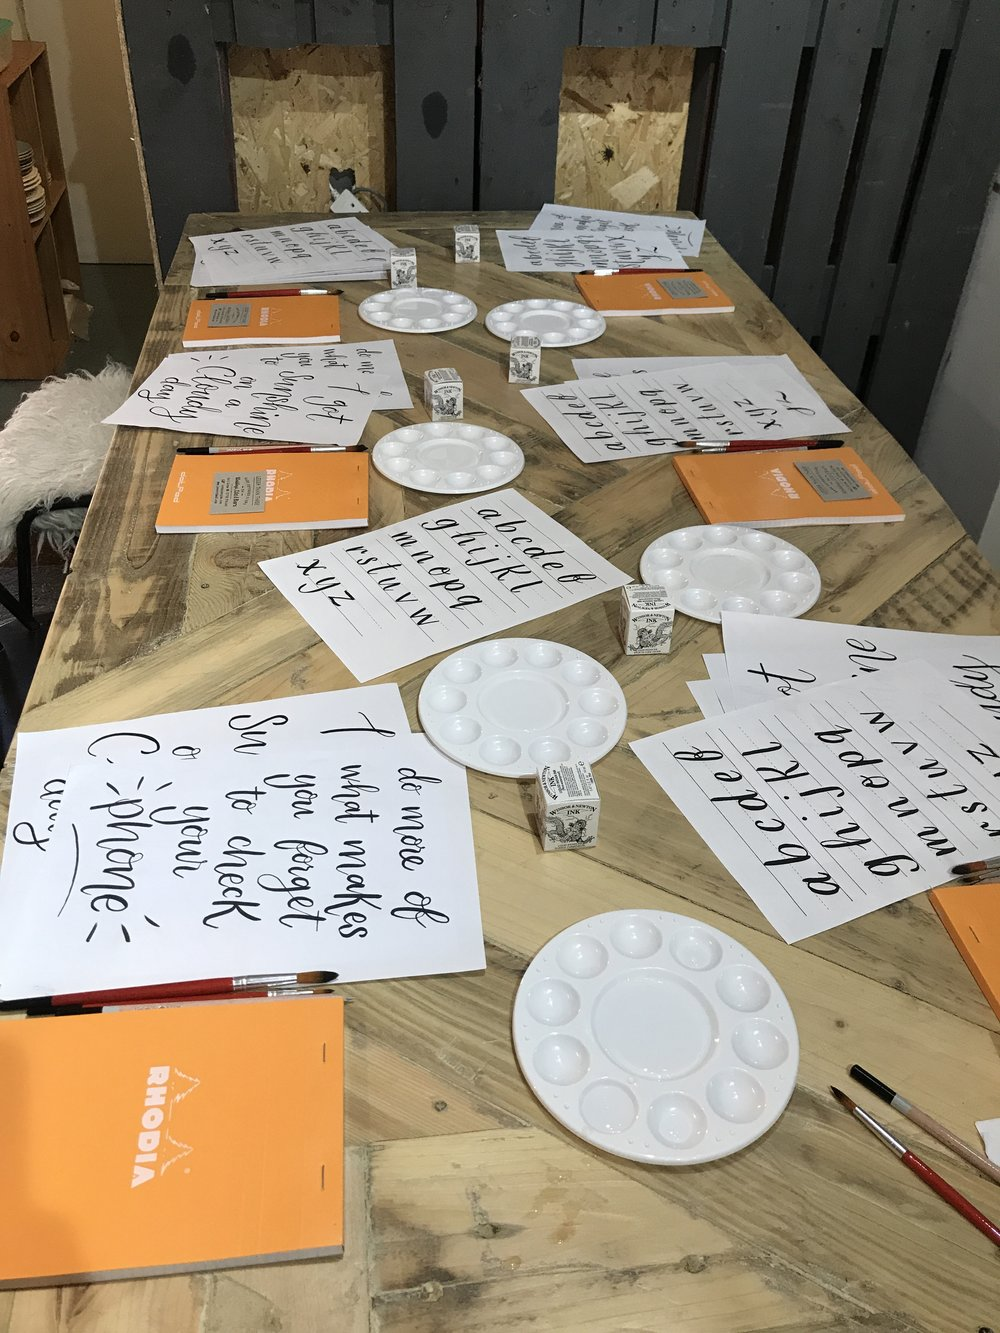 Brush Lettering£40 all materials included. - Where : The Home Of Handmade, Woodhouse EavesWhen: Sat 2nd Feb   2:30-4:30pmBook here! https://www.thehomeofhandmade.co.uk/product/letter-brush-workshop-saturday-2nd-febuary-2-30pm/———————————————————————————Where : The Guildhall, LeicesterWhen : Sat 2nd March    11-1:30pmTo Book call 0116 2532569.————————————————————————————Where : Mon Amie, KibworthWhen : Sat 9th March  10-12:30pmBook here!https://www.monamieliving.co.uk/product-page/brush-lettering-for-beginners-9th-march